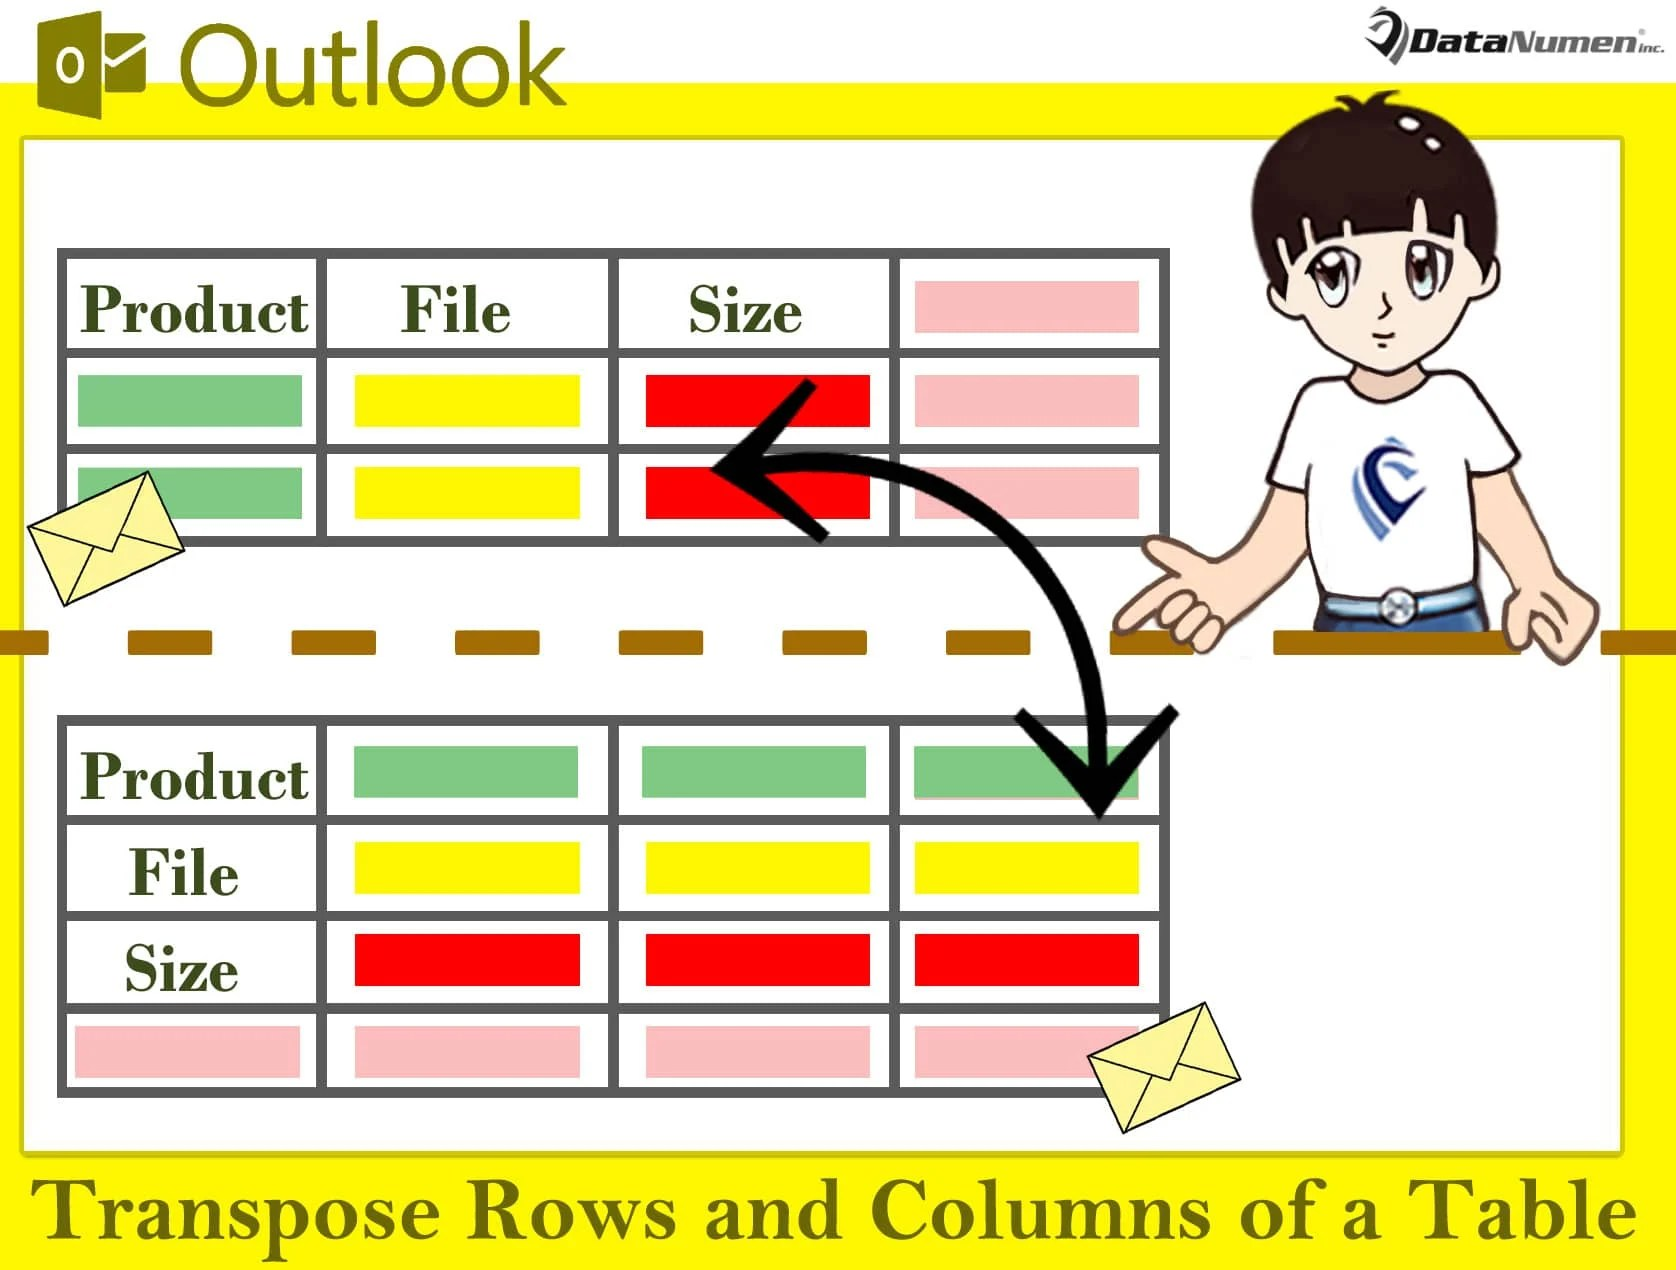 How To Quickly Transpose The Rows And Columns Of A Table In Your Outlook Email